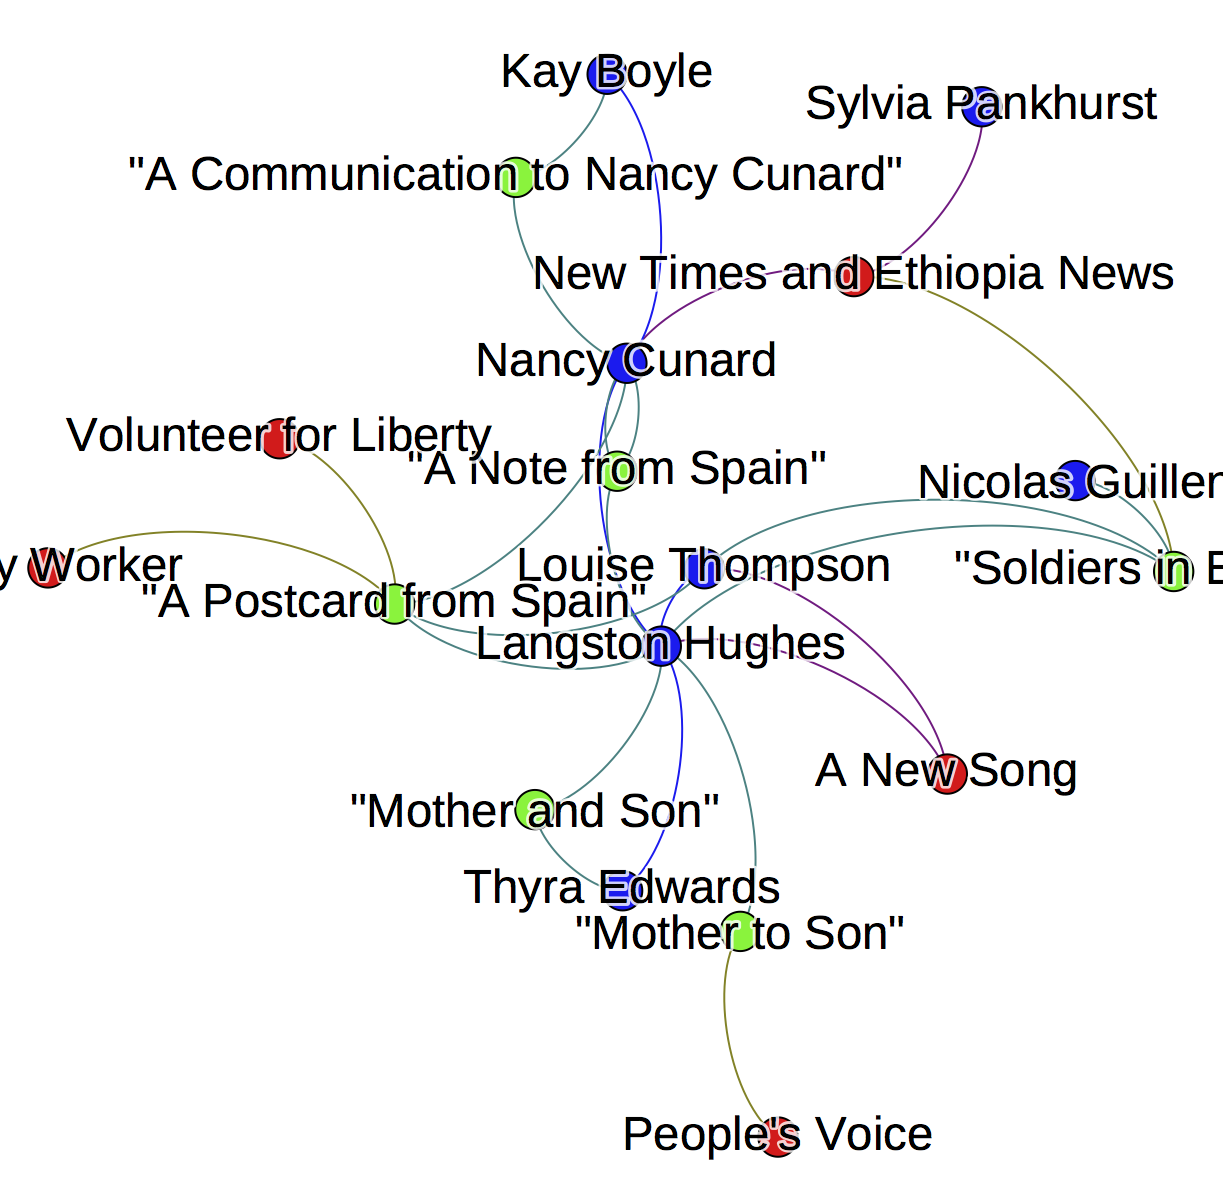 """The network graphs documents connections among Louise Thompson, Langston Hughes, Nicolas Guillen, Thyra Edwards, Nancy Cunard, Sylvia Pankhurst, and Kay Boyle. It includes poems """"A Communication to Nancy Cunard,"""" """"Soldiers in Ethiopia,"""" """"A Note from Spain,"""" """"Mother to Son,"""" and """"Mother and Son"""""""